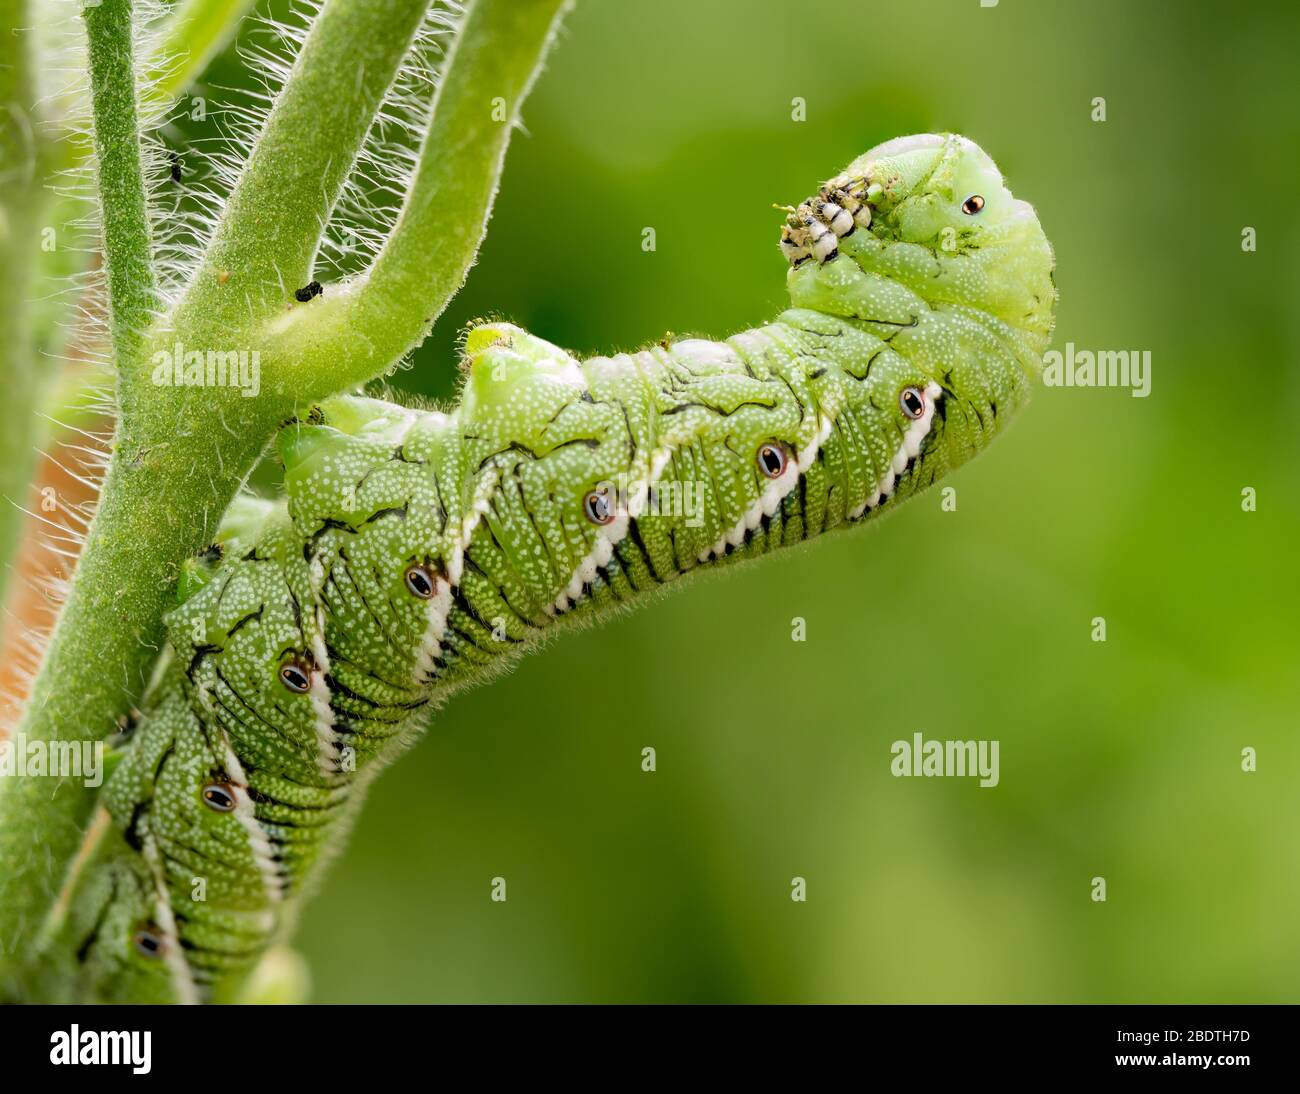 Tomato hornworm, Manduca quinquemaculata, close up showing the caterpillar eating while leaning back on a tomato plant stalk Stock Photo